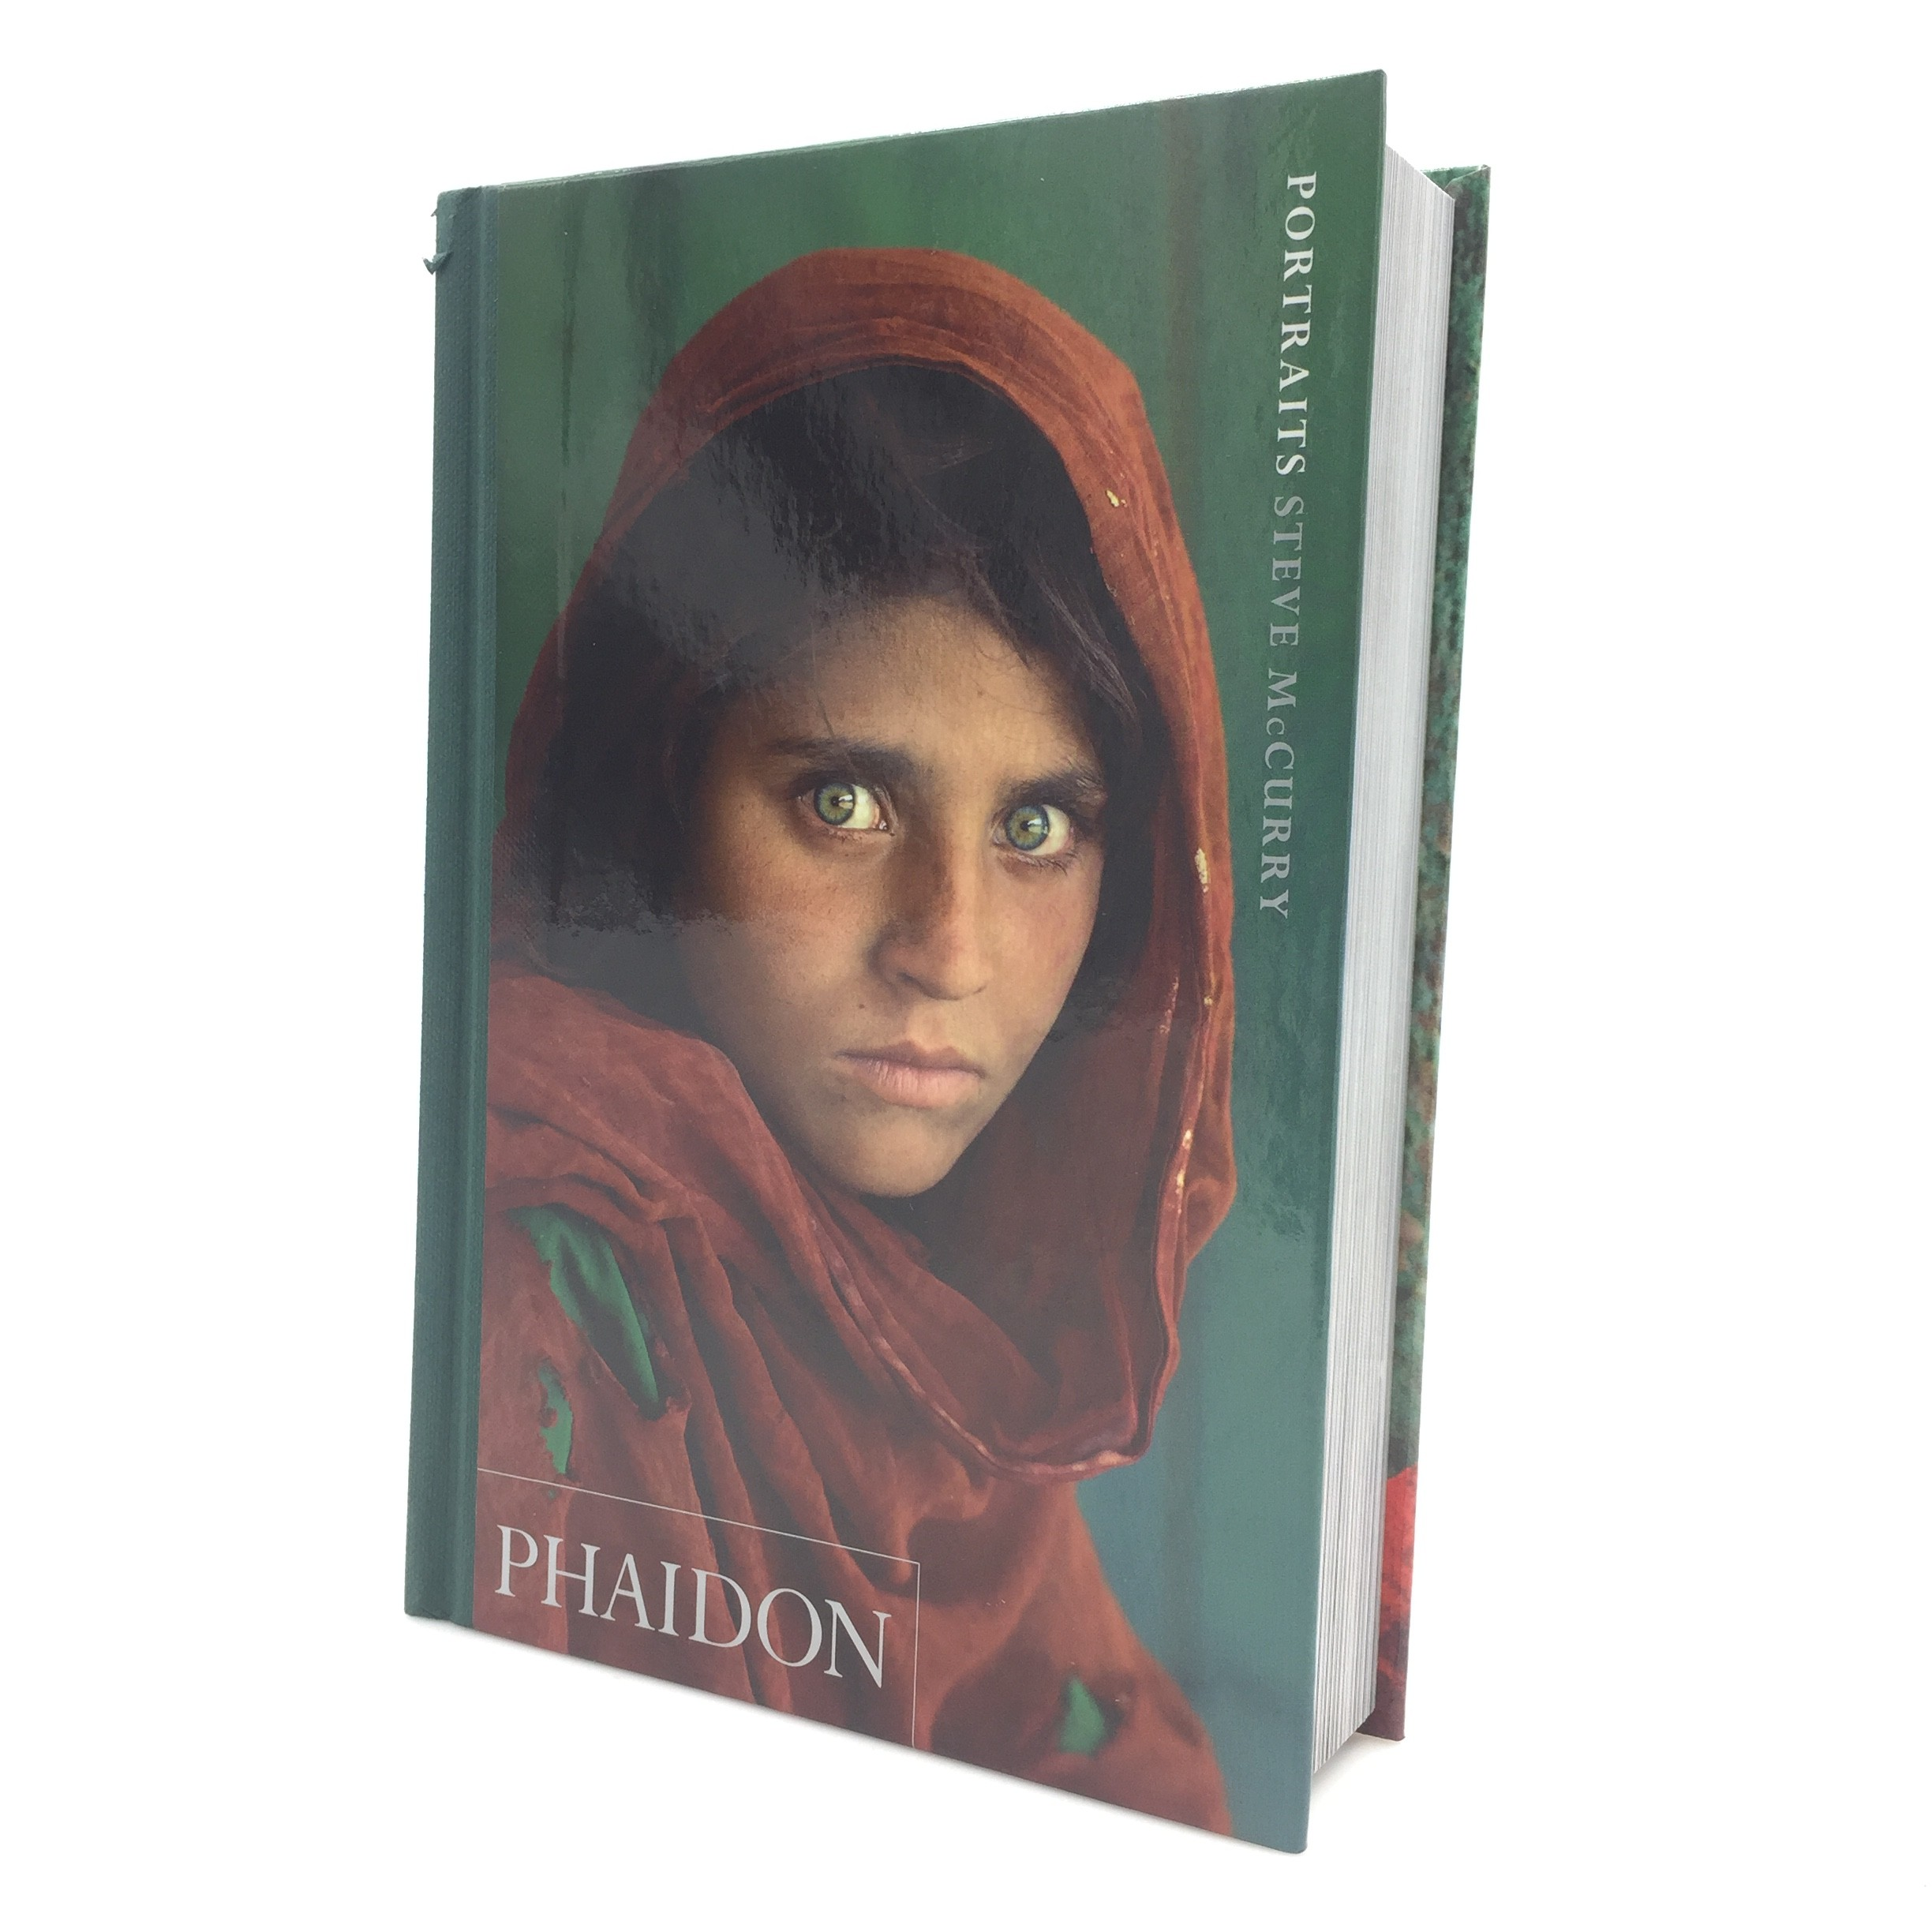 Home Photo Book Others Steve McCurry